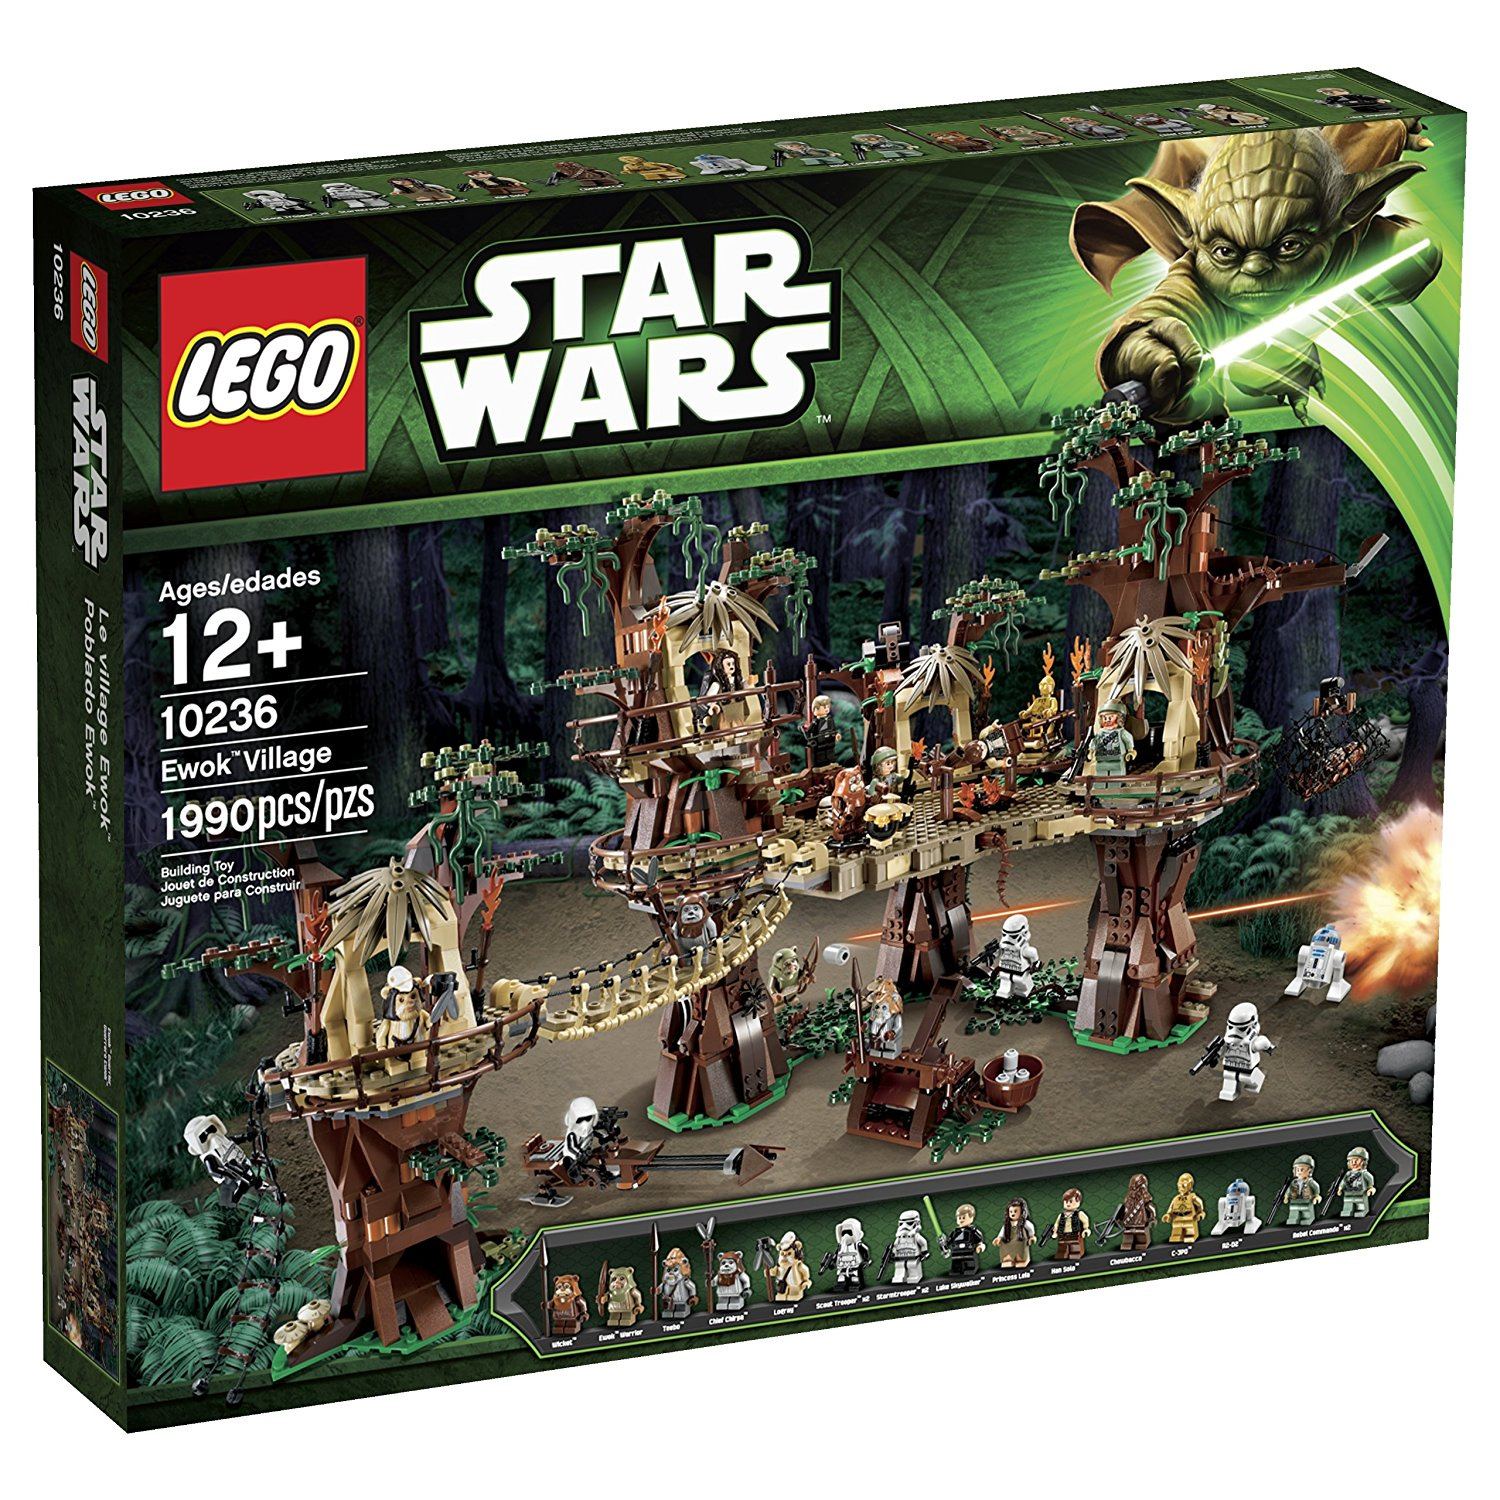 VillagemisbNewamp; Lego 10236 Star Ewok Retired Wars nONwkXP80